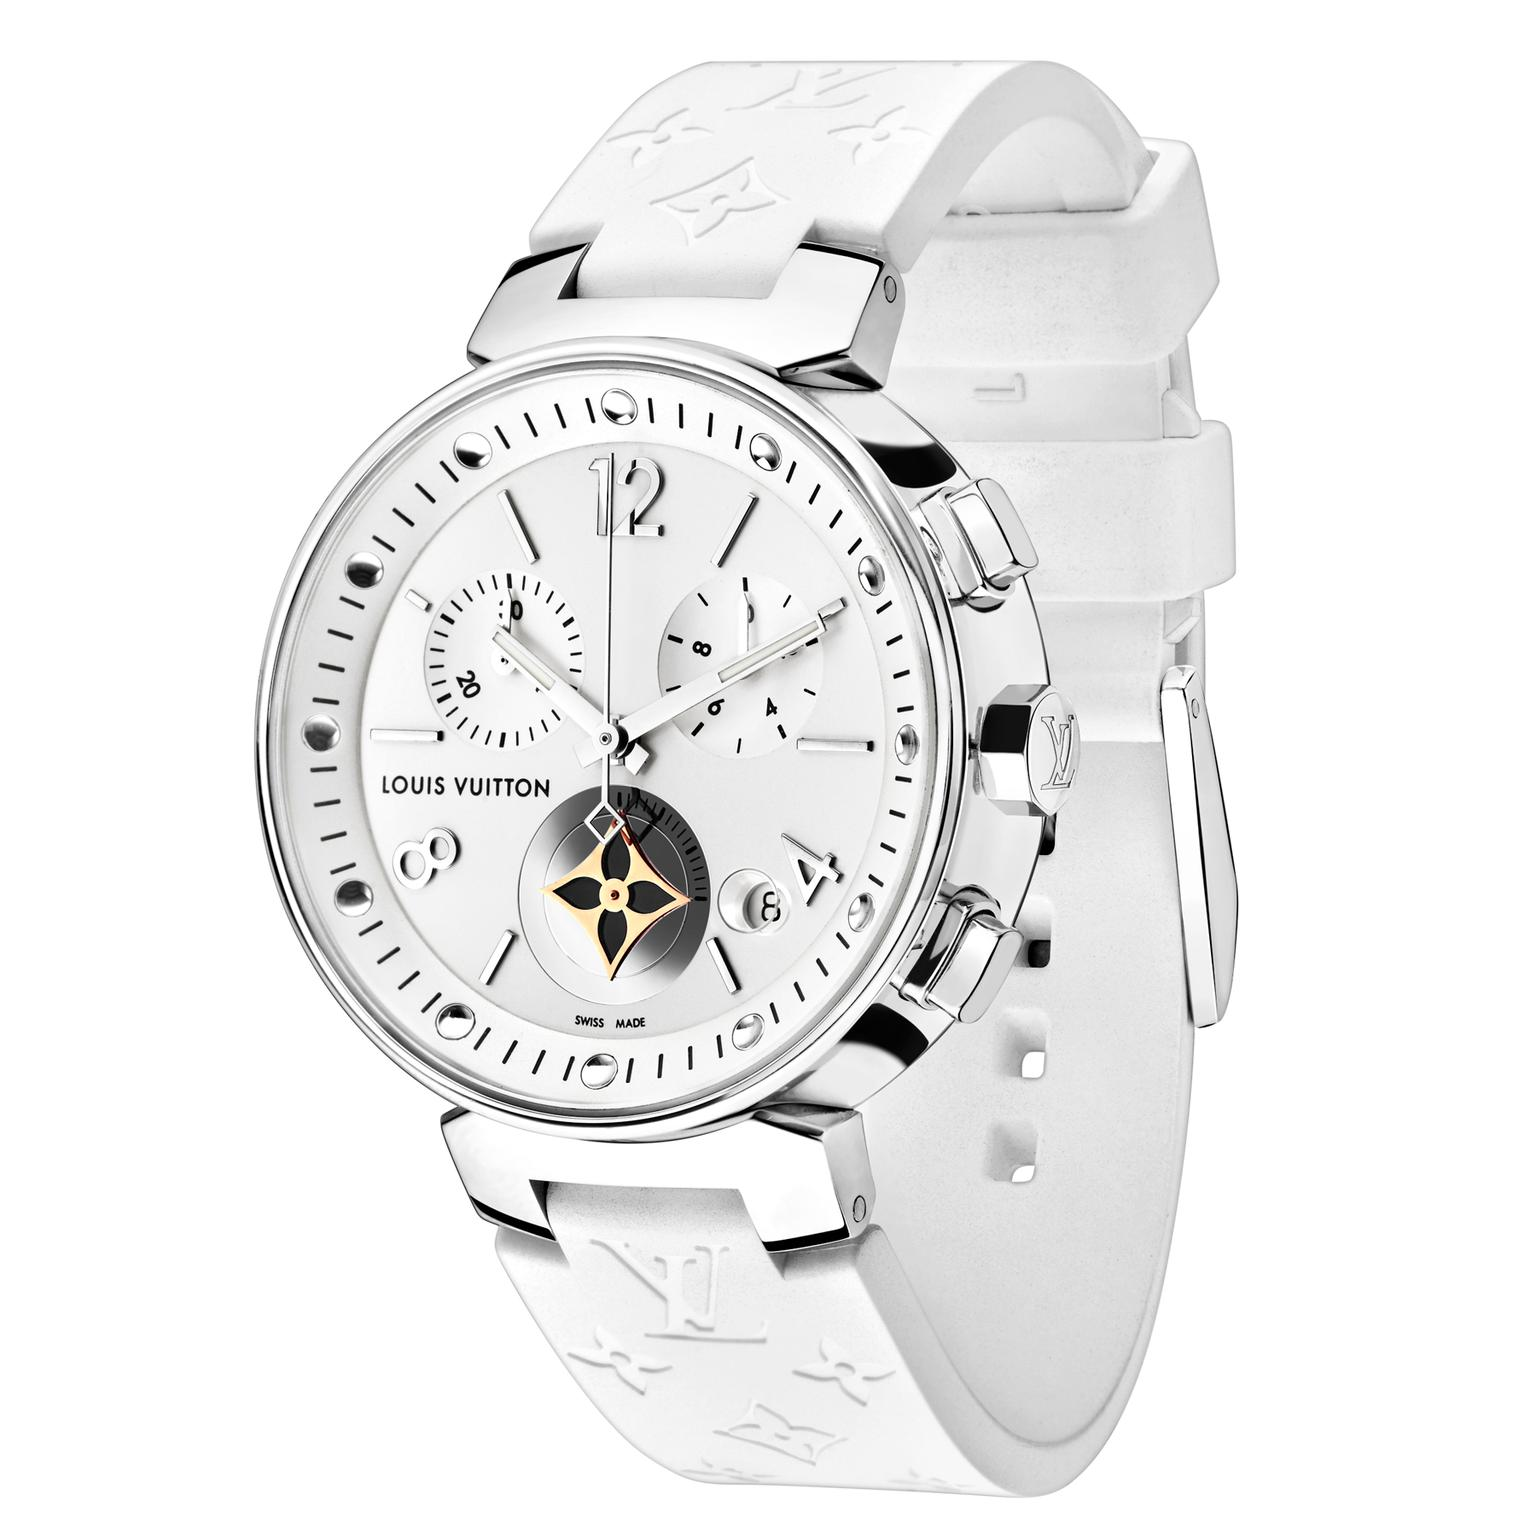 Louis Vuitton Tambour Moon Star Chronograph White